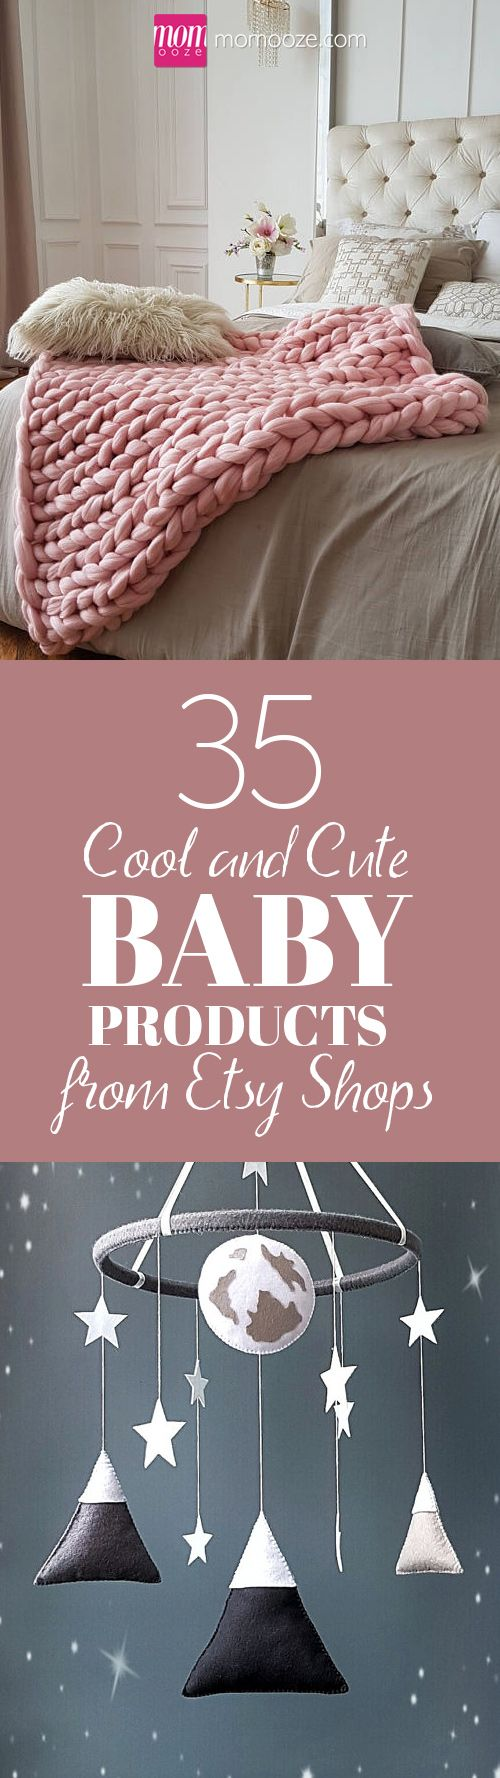 35+ Cool and Cute Baby Products from Etsy Shops - momooze.com